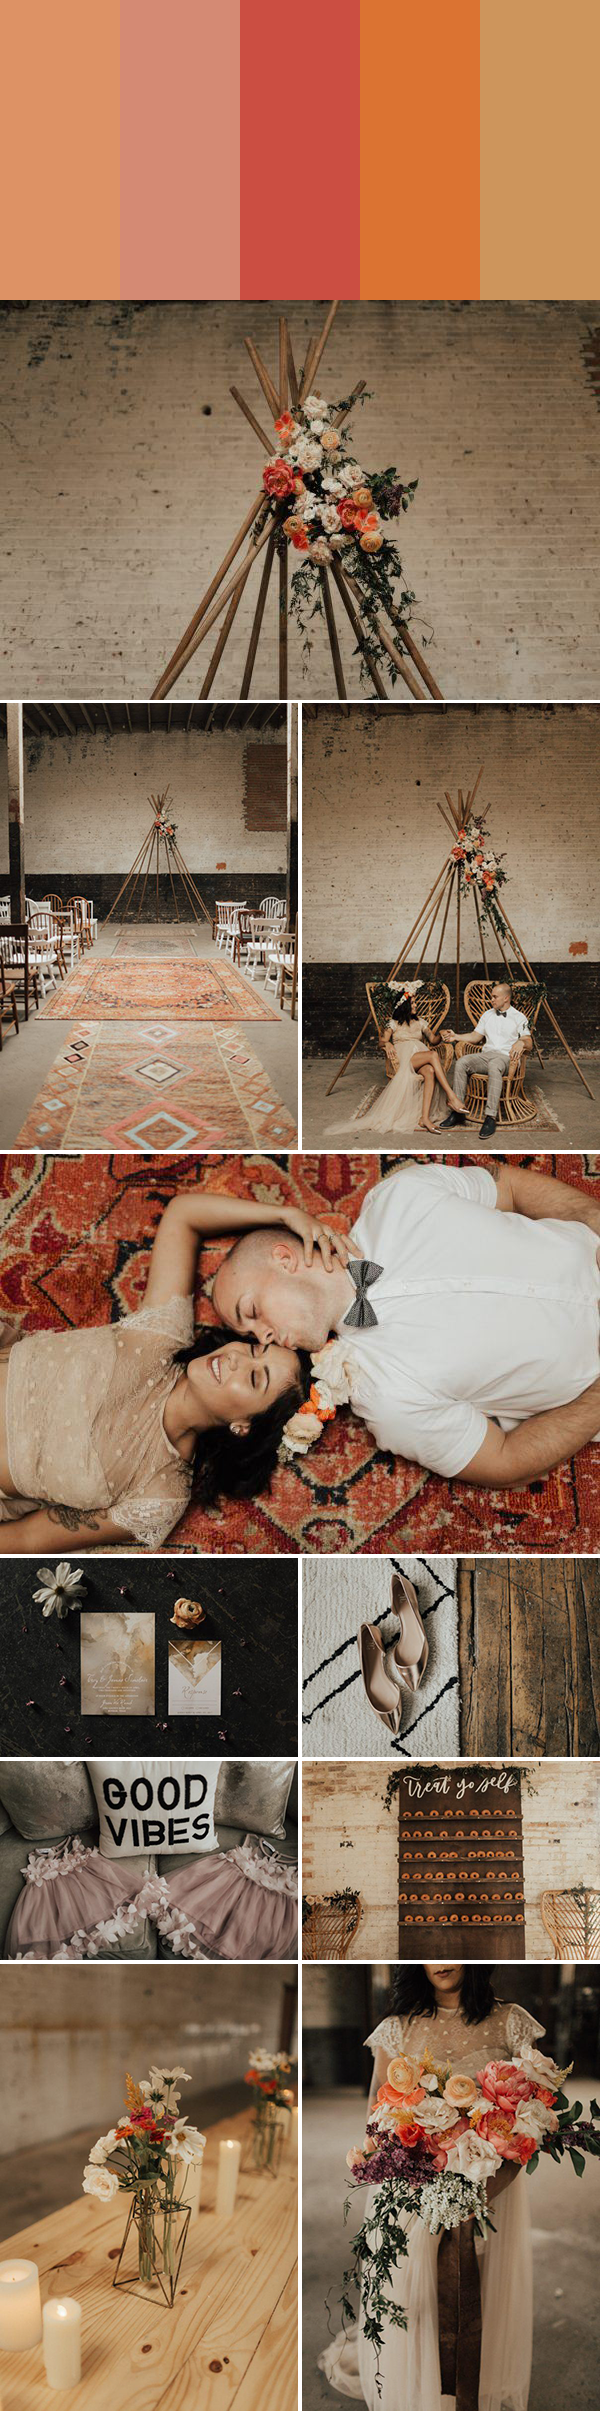 5 Seriously Pretty Monochromatic Wedding Color Palettes to